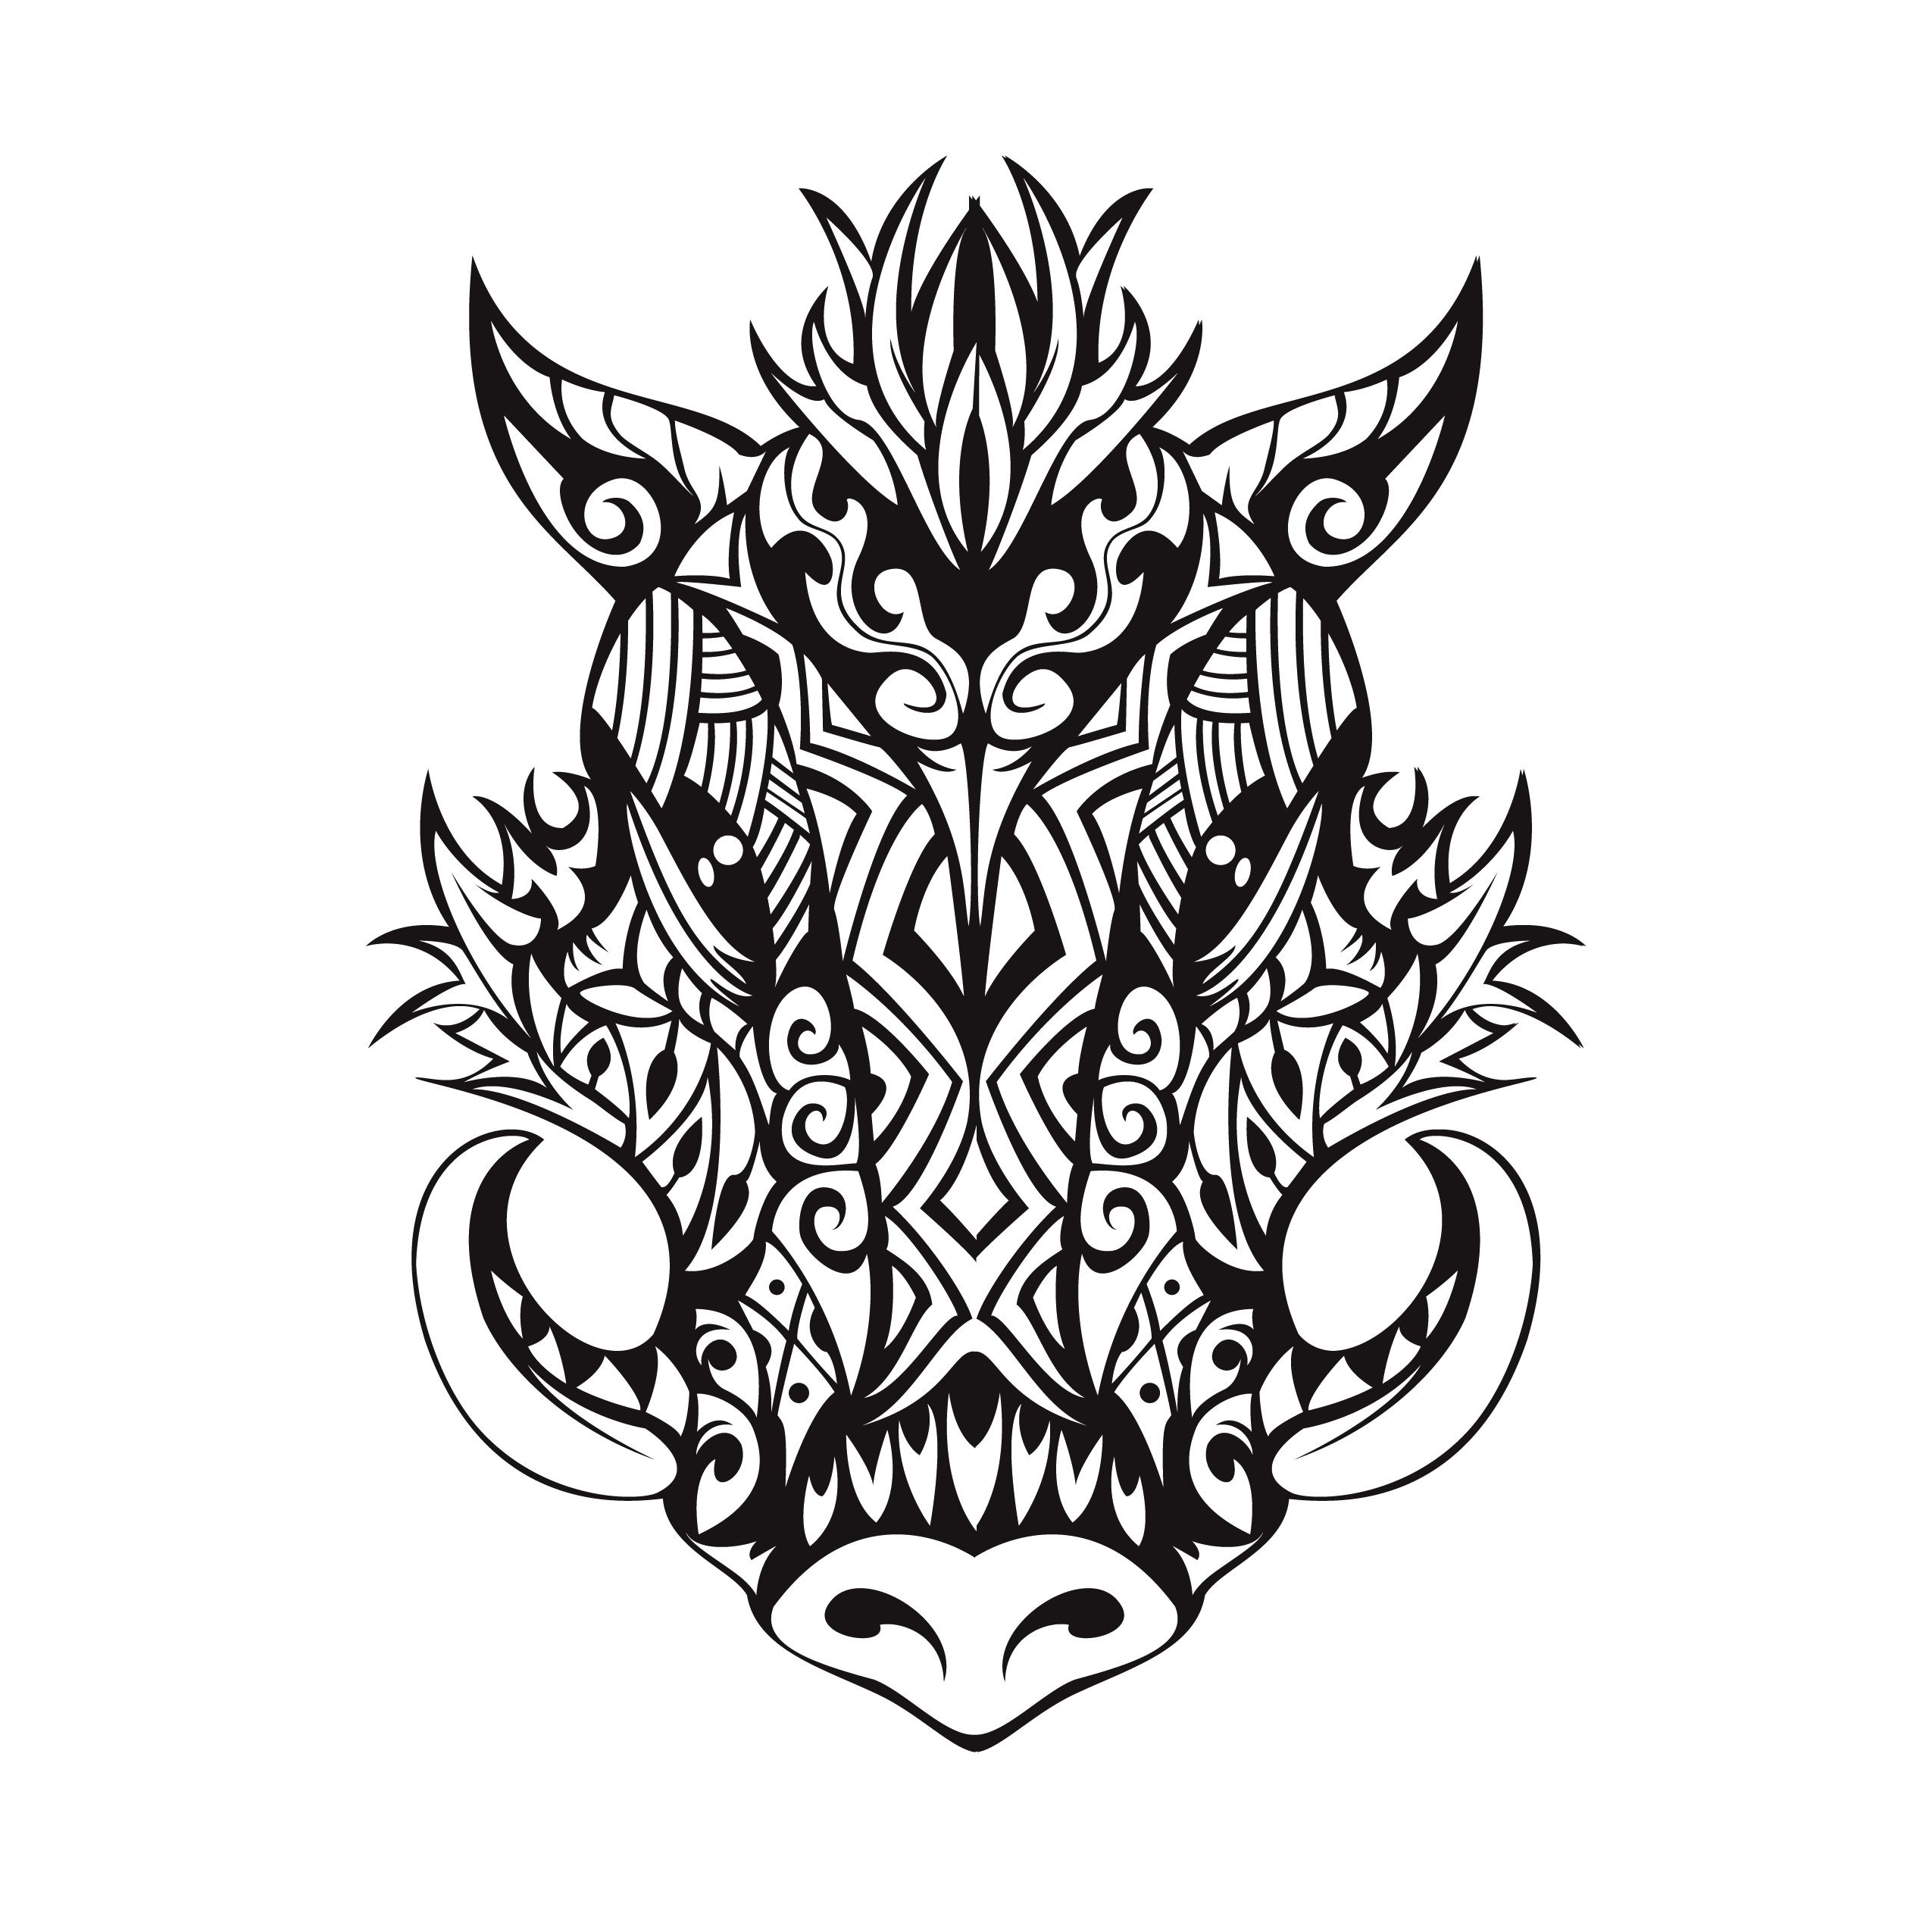 tribal boar tattoo tattoo design pinterest tattoo tatting and rh pinterest com Wild Boar Tattoos for Men boat tattoo designs